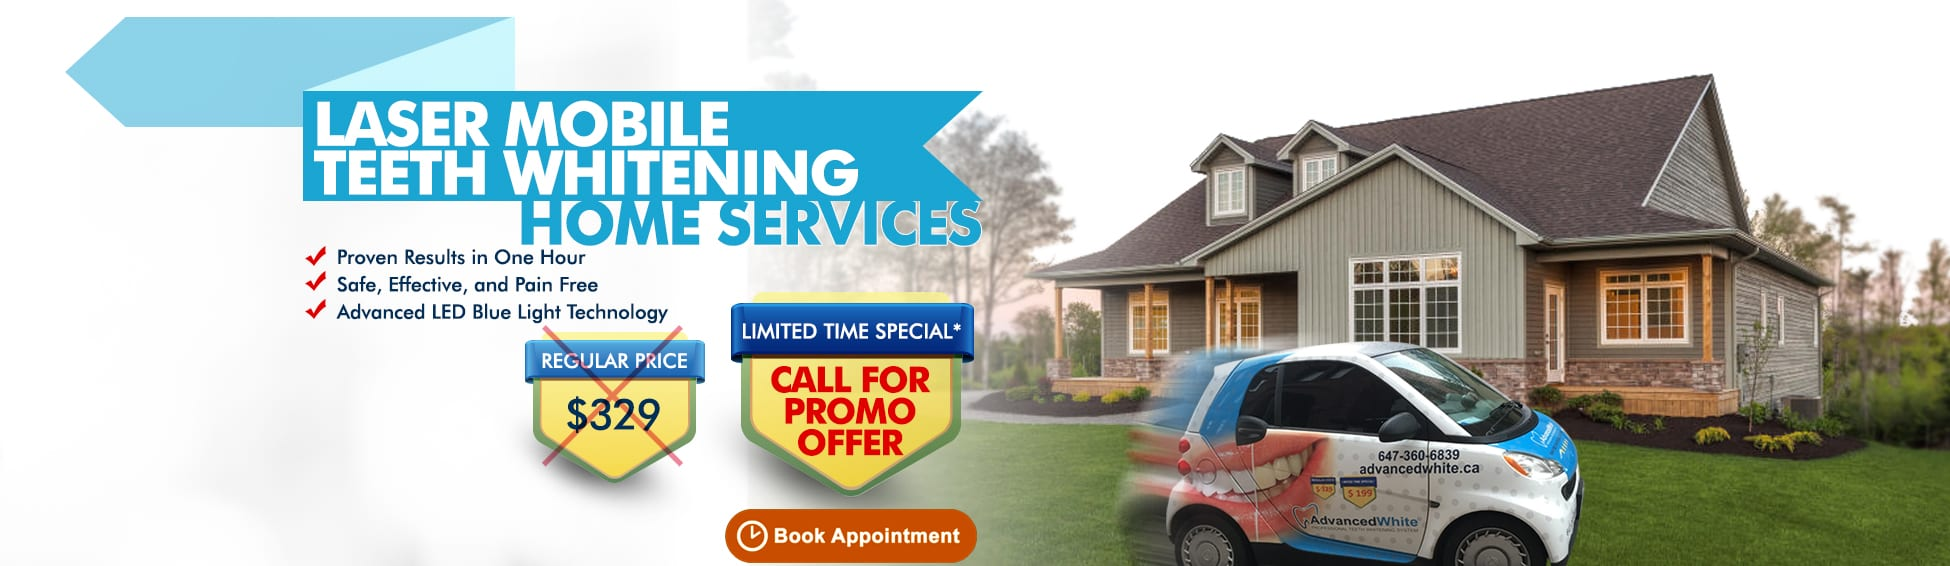 Laser Mobile Teeth Whiting Home Services– Call For Promo Offer